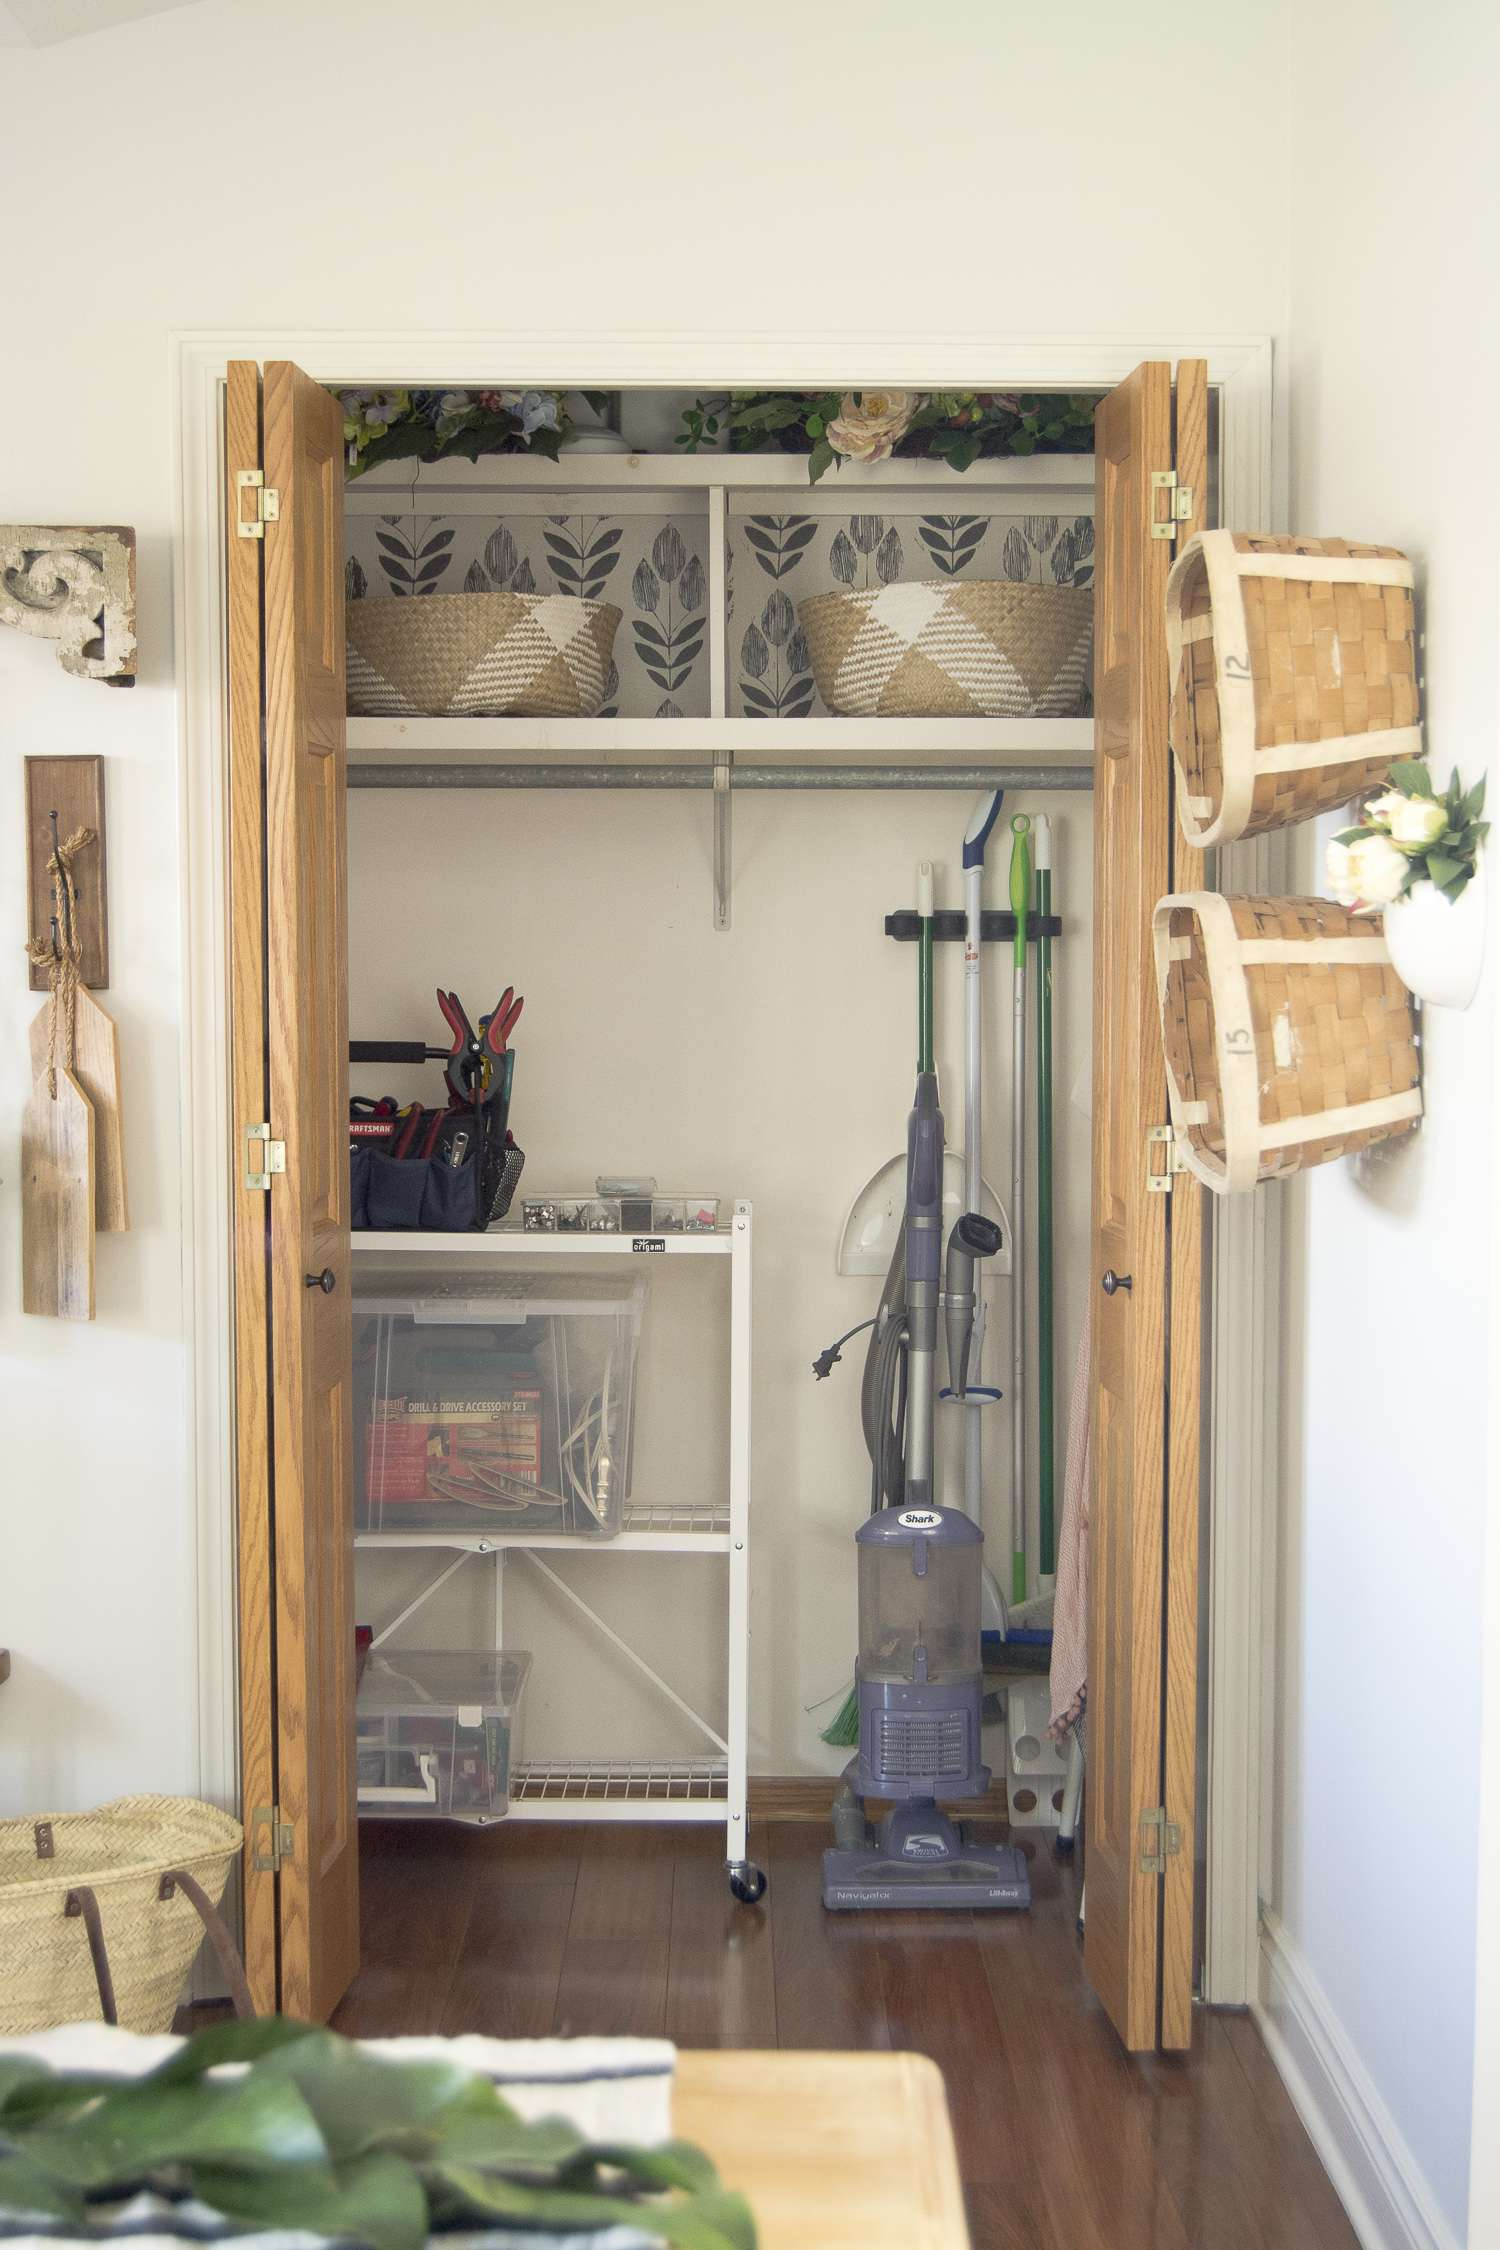 Dual purpose utility closet home organization ideas.